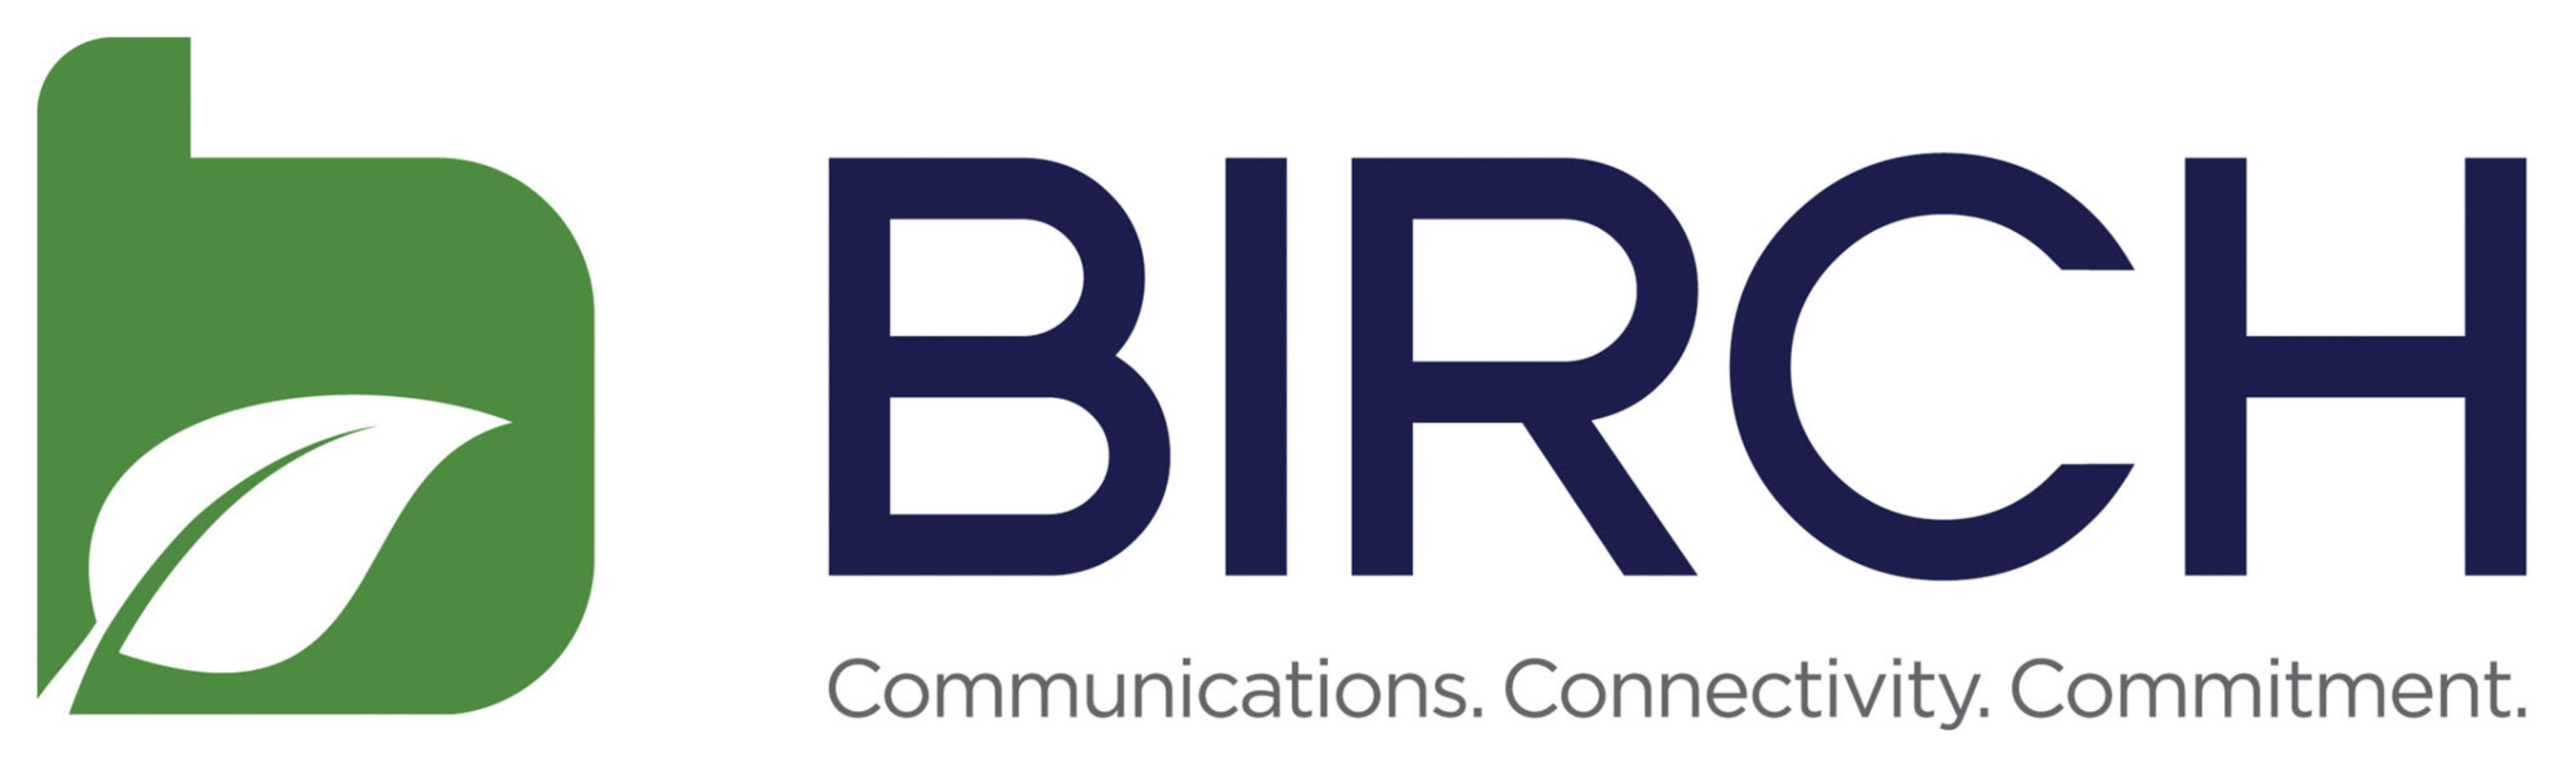 Birch Communications.